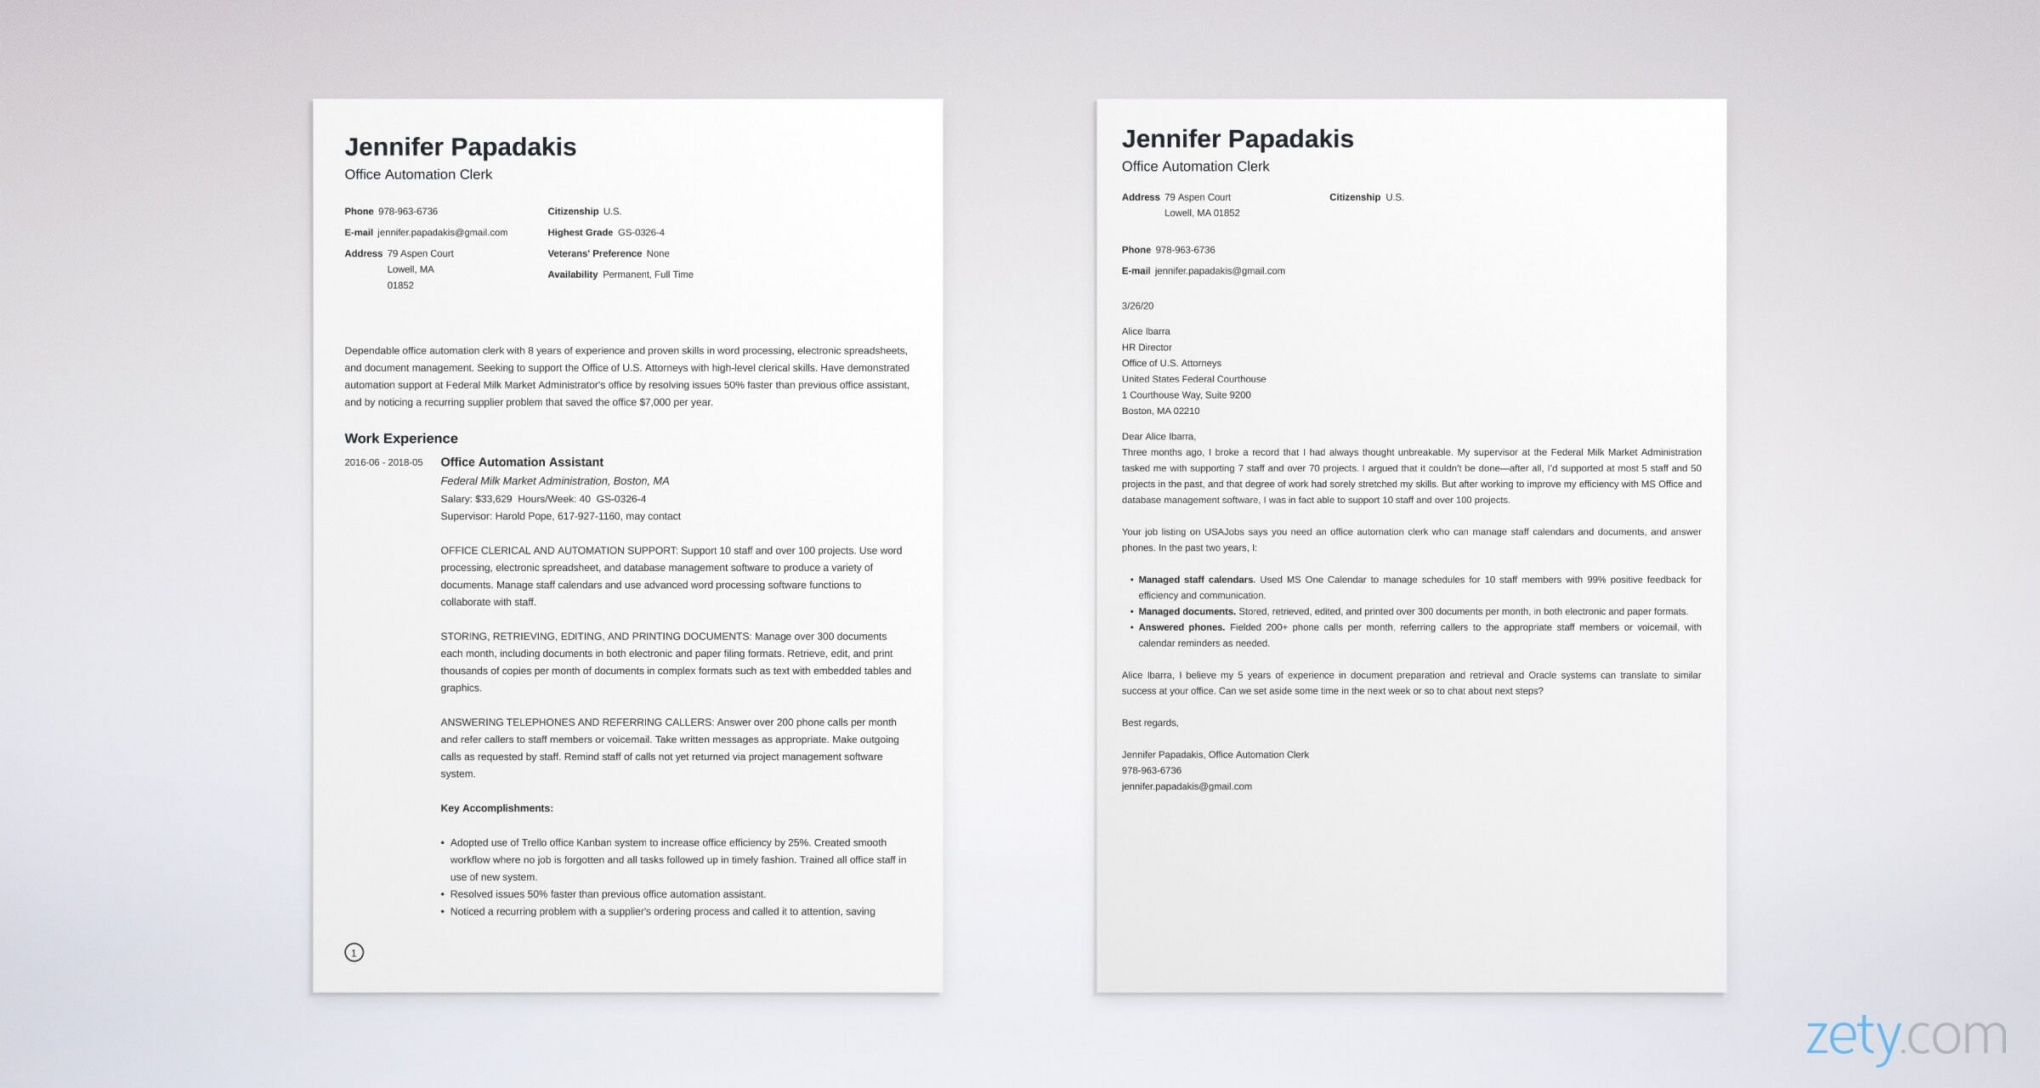 federal cover letter samples & guide for government jobs federal resume cover letter template pdf